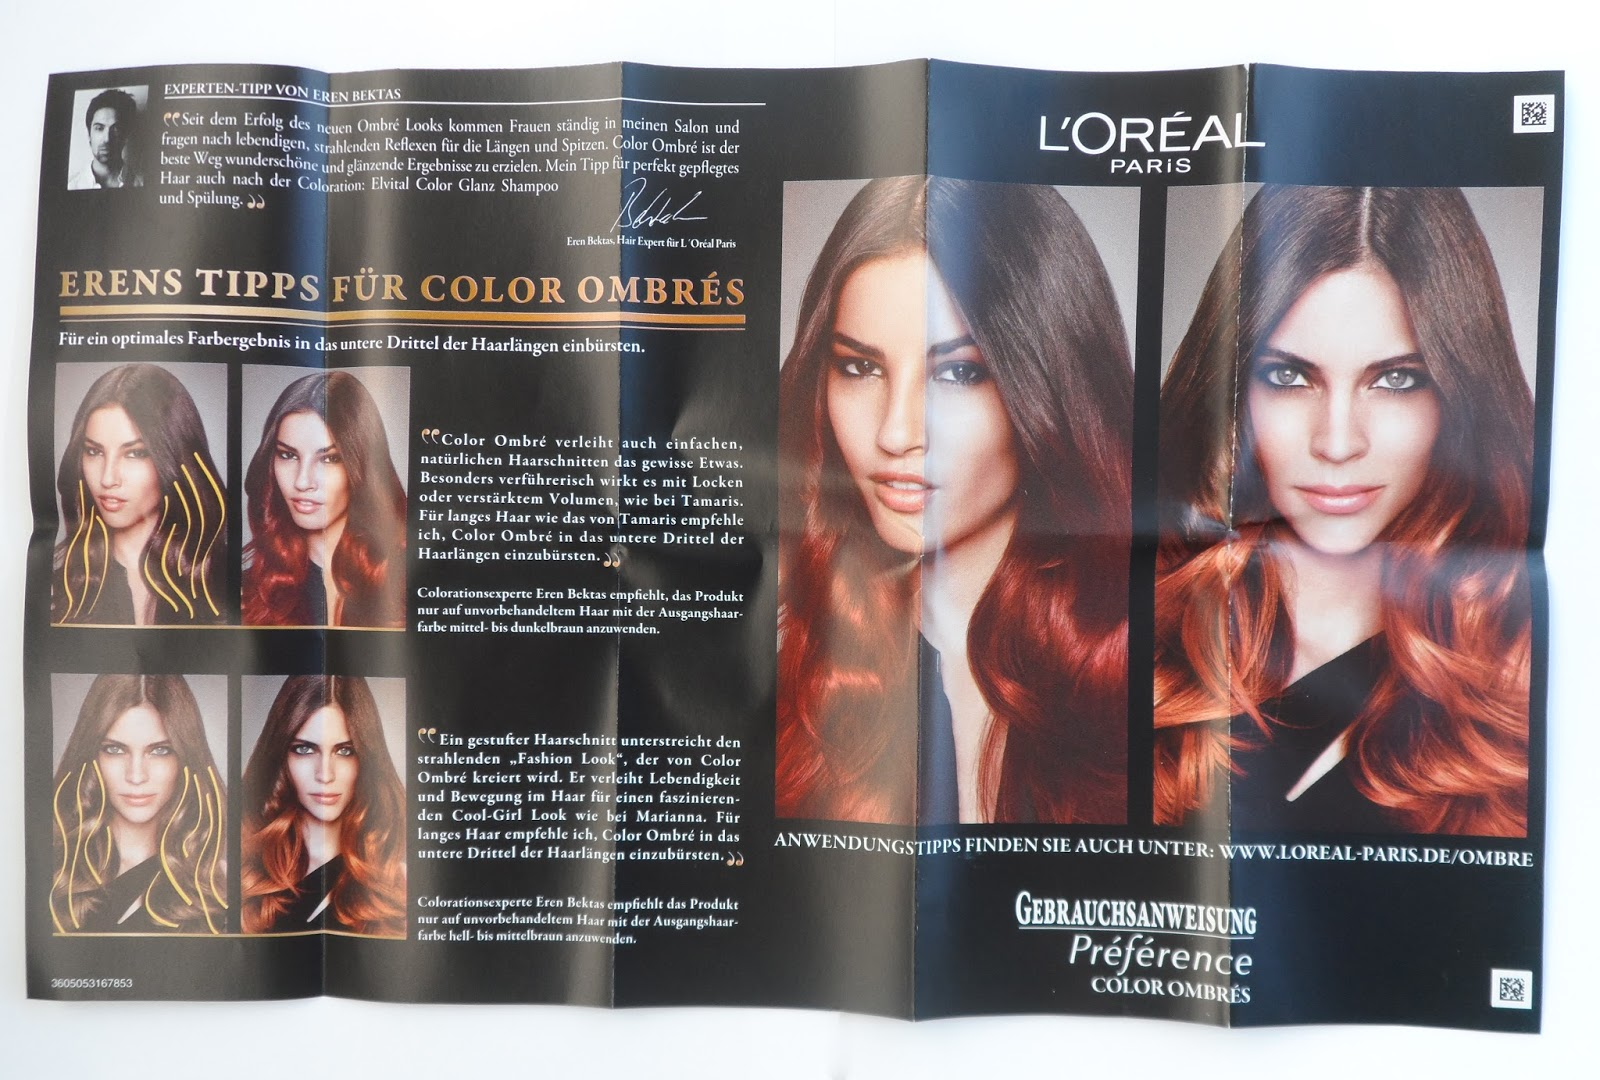 loreal color ombres preference dip dye look copper review another kind of beauty blog f. Black Bedroom Furniture Sets. Home Design Ideas